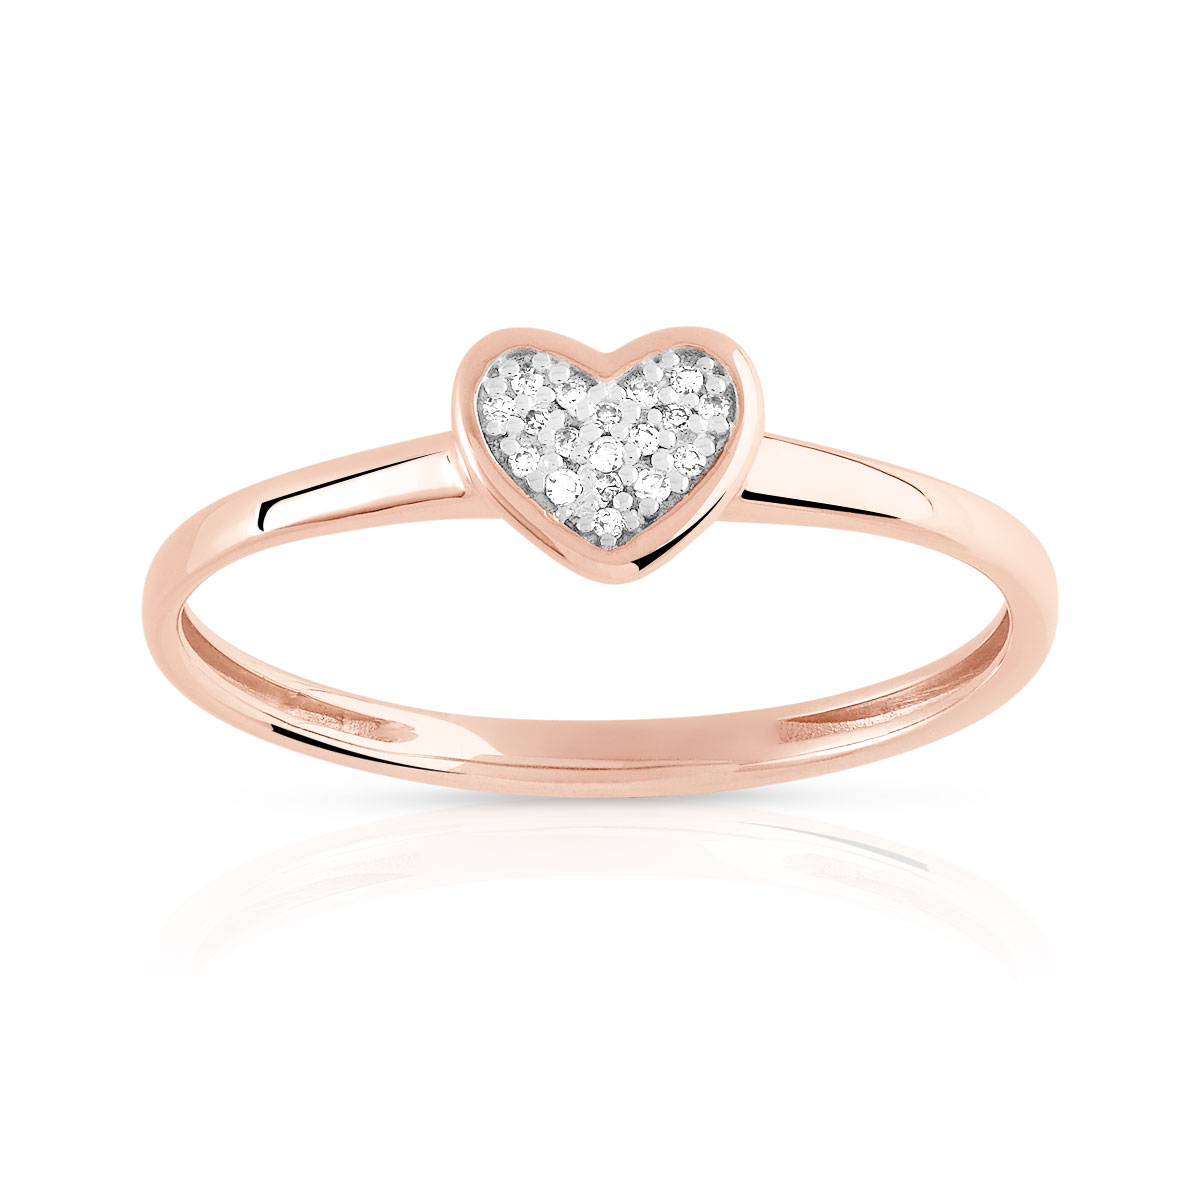 Bague or 375 rose diamant - vue V1